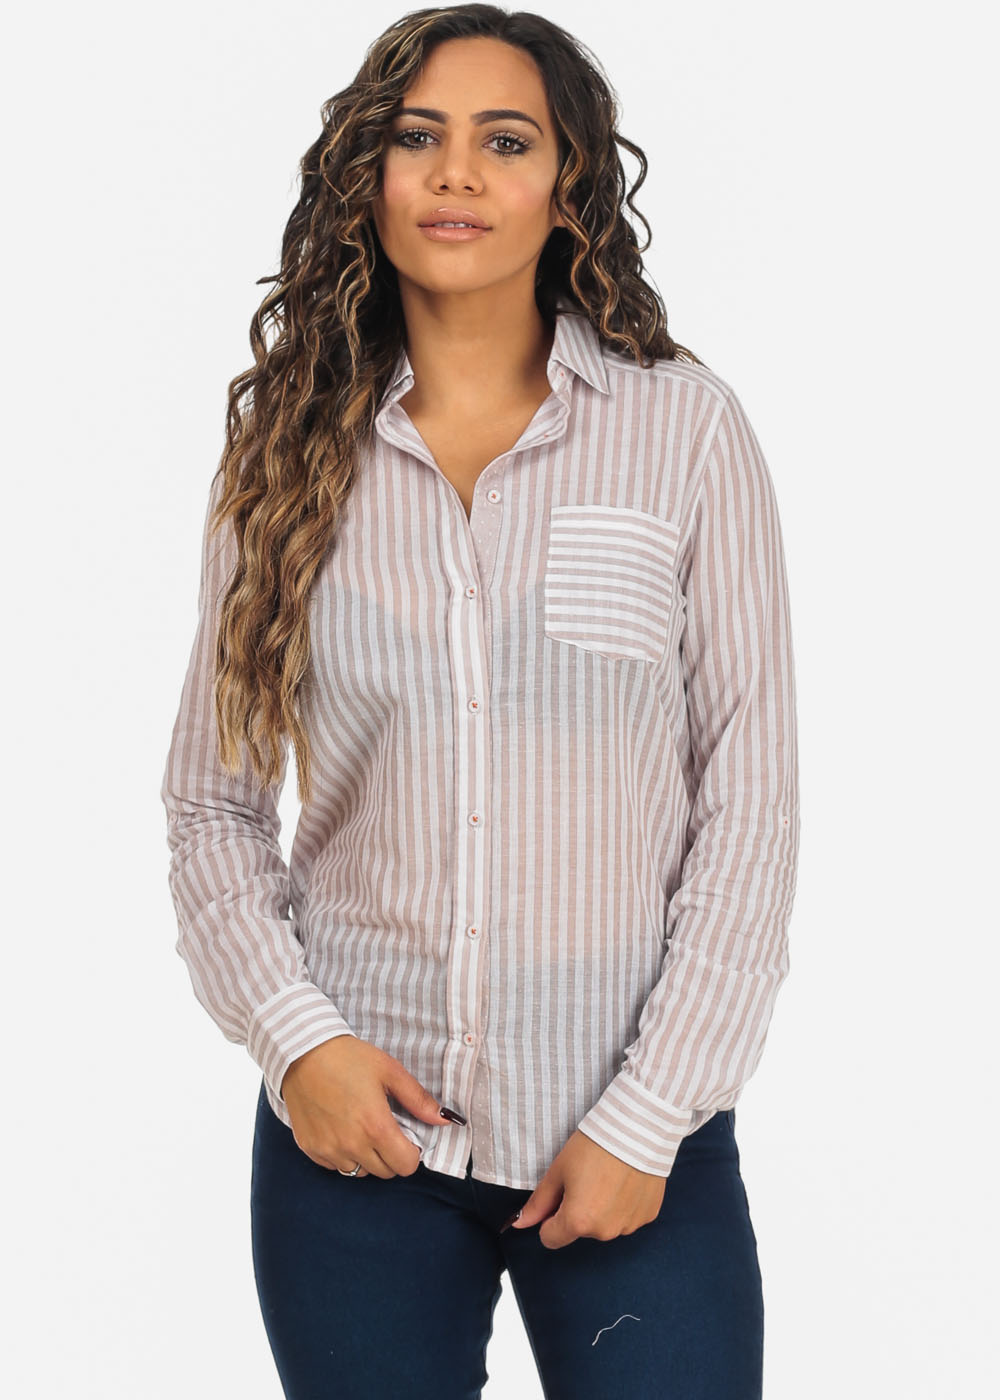 1596c7a21 Womens Juniors White and Khaki Striped Long Sleeve Button Up Blouse ...